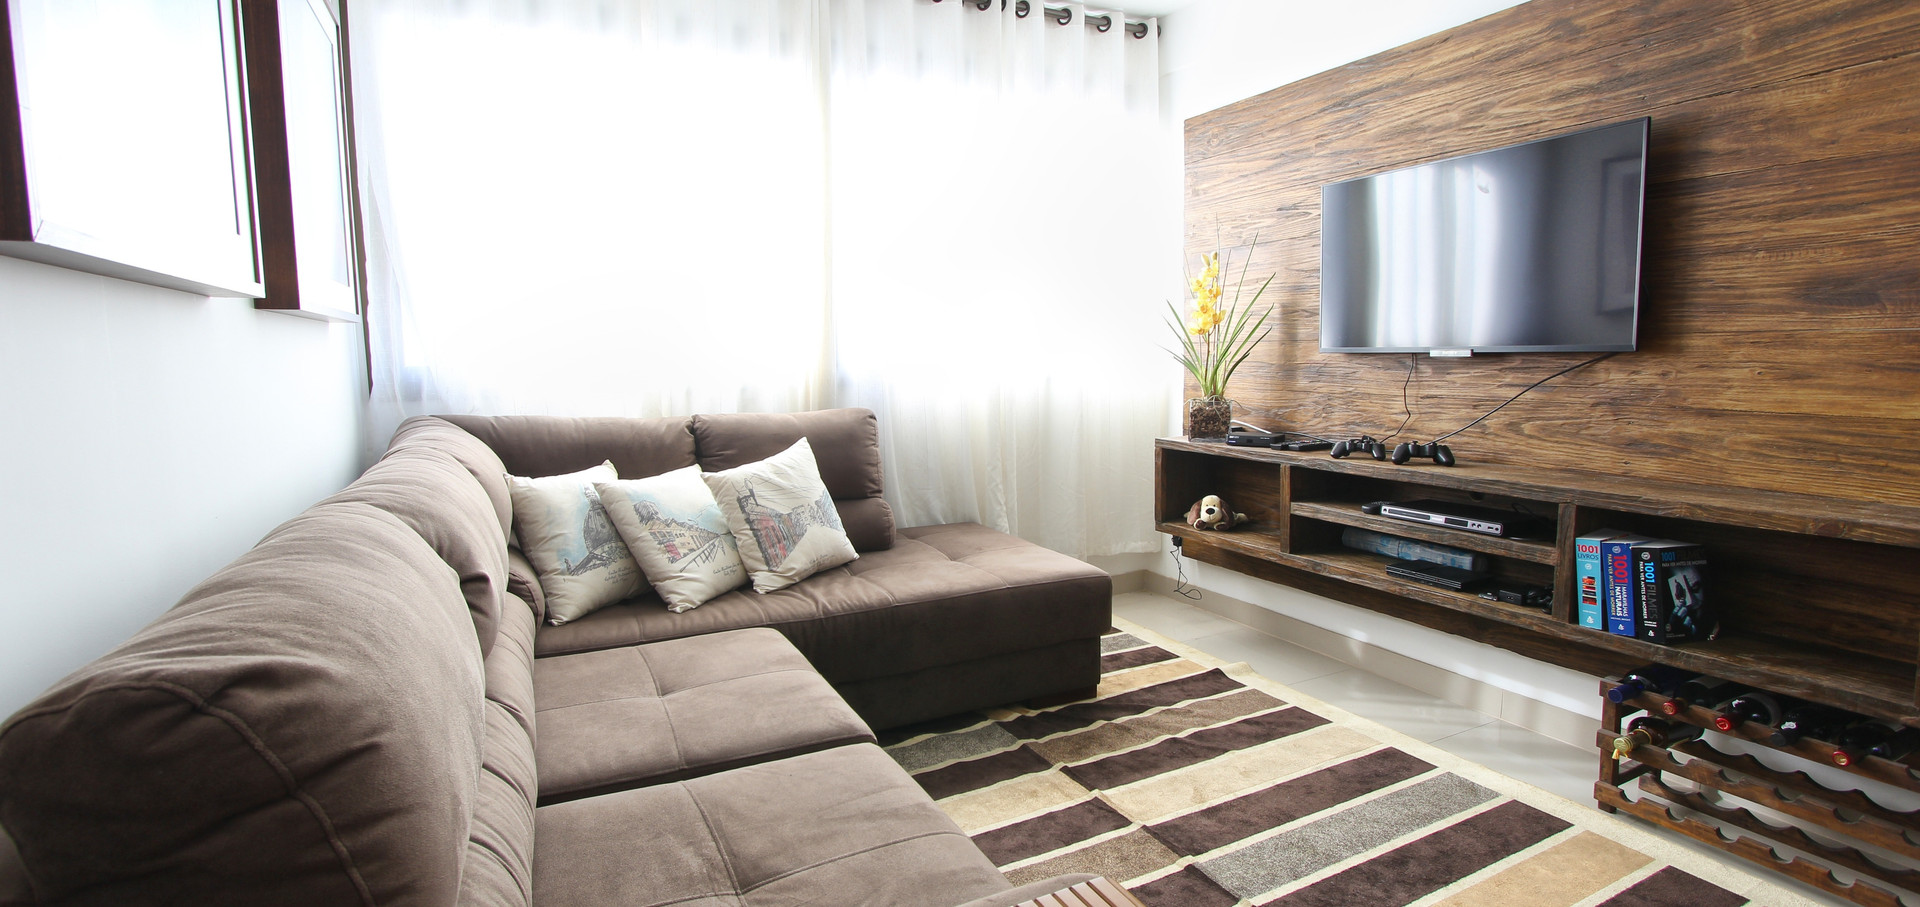 CHICCO TV UNIT  ROOM